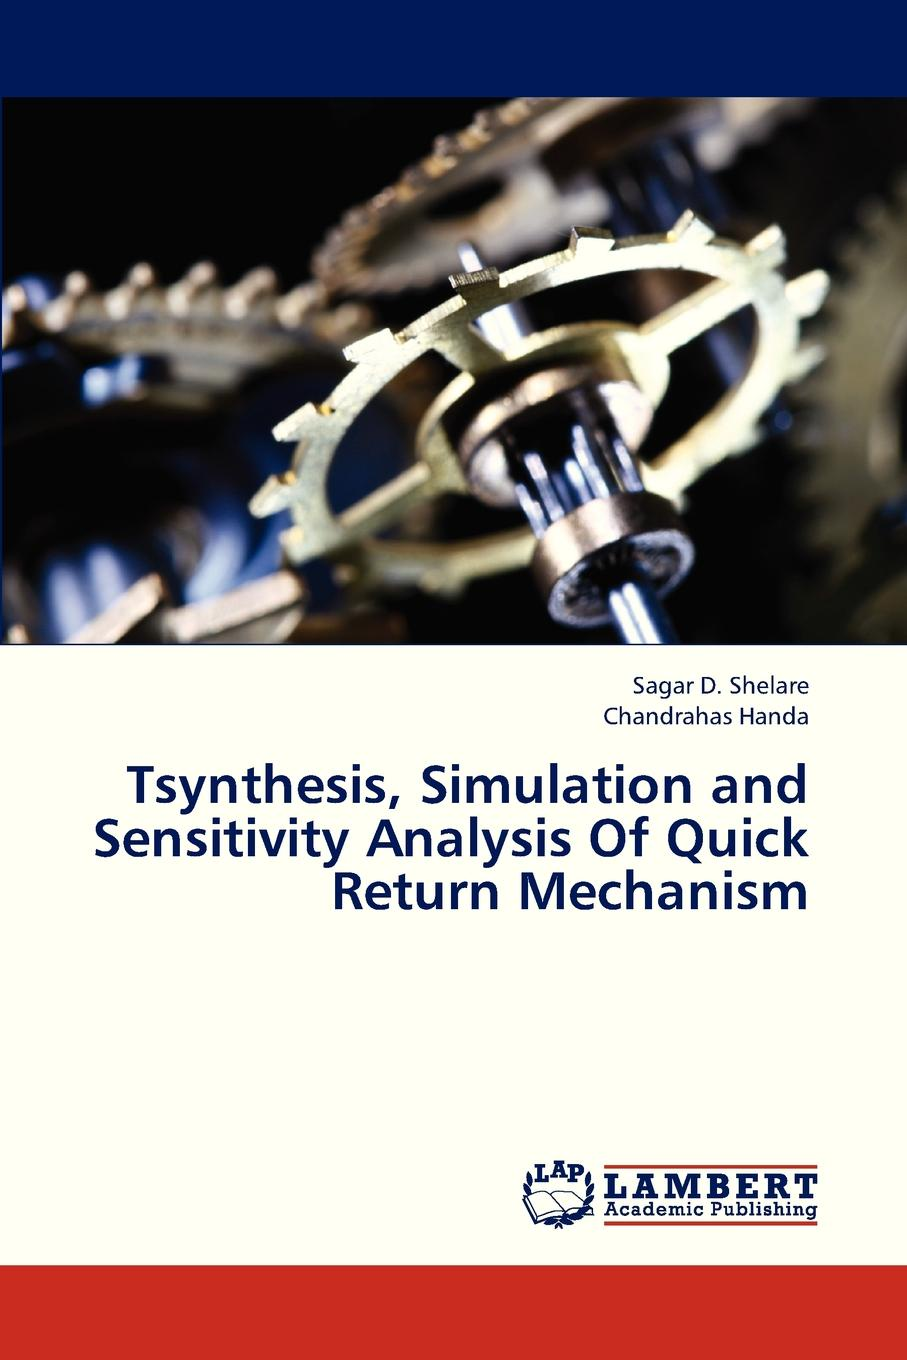 Shelare Sagar D., Handa Chandrahas Tsynthesis, Simulation and Sensitivity Analysis of Quick Return Mechanism недорго, оригинальная цена